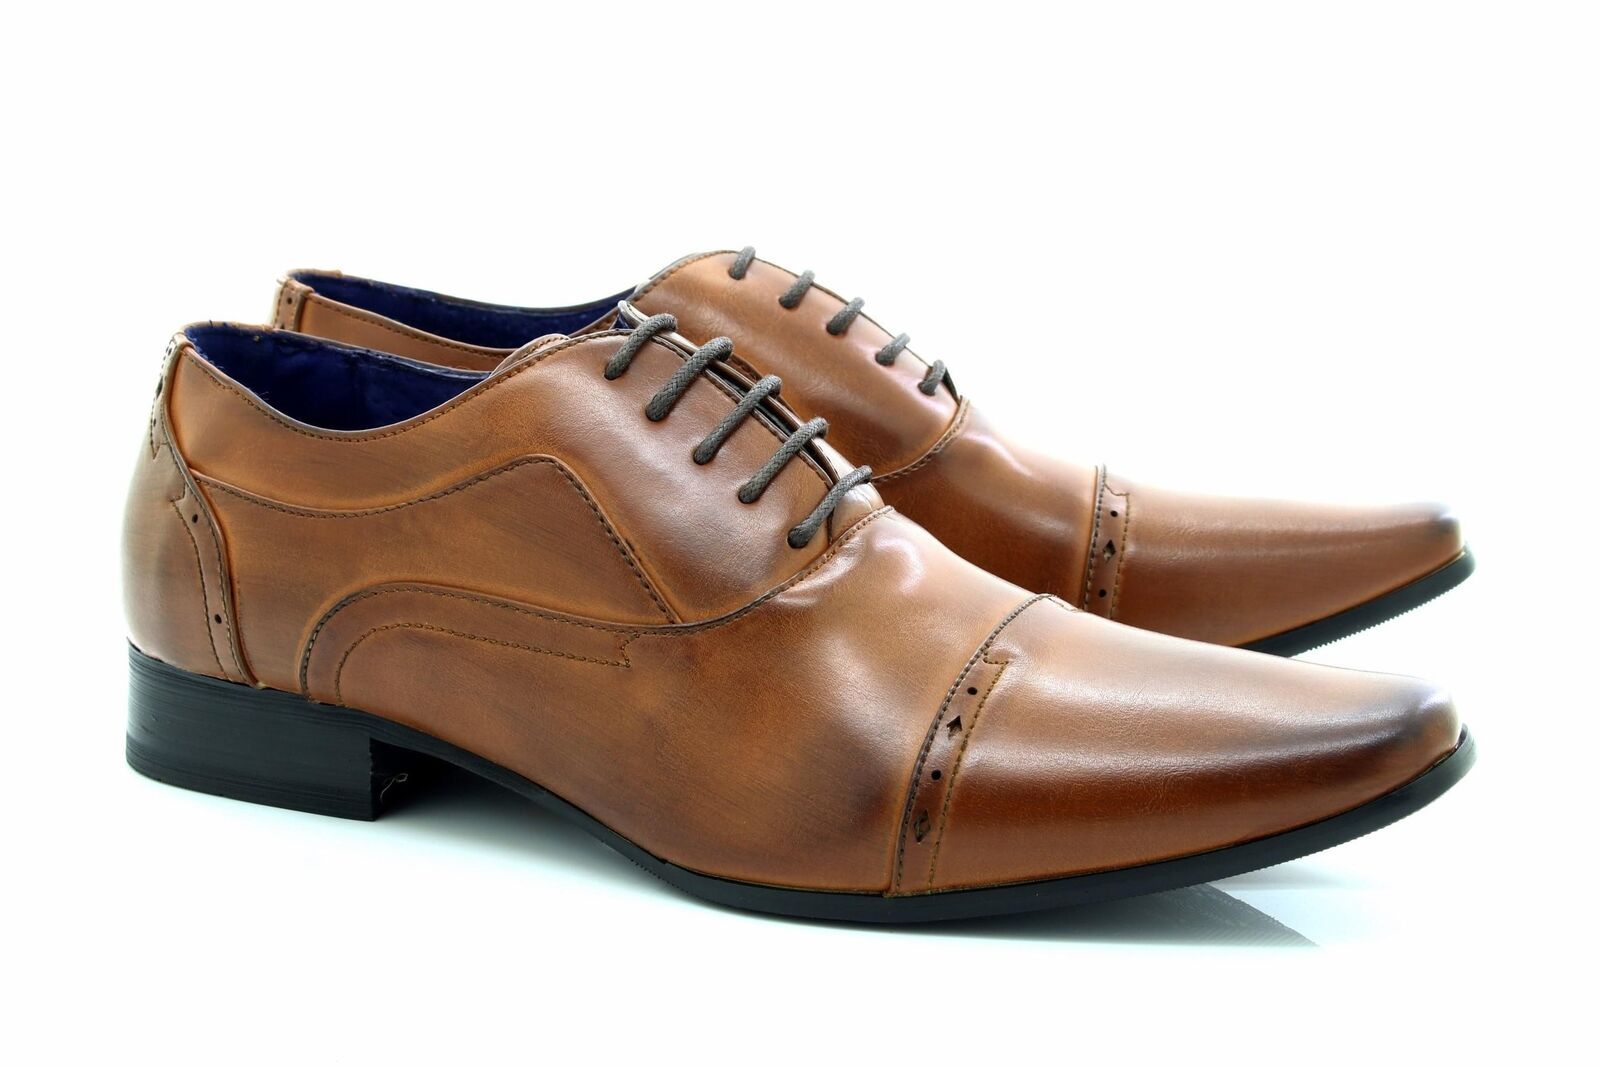 045bd54a94c Mens Route21 M9549 Smart Oxford Formal Lace Up shoes Brown Burnished PU